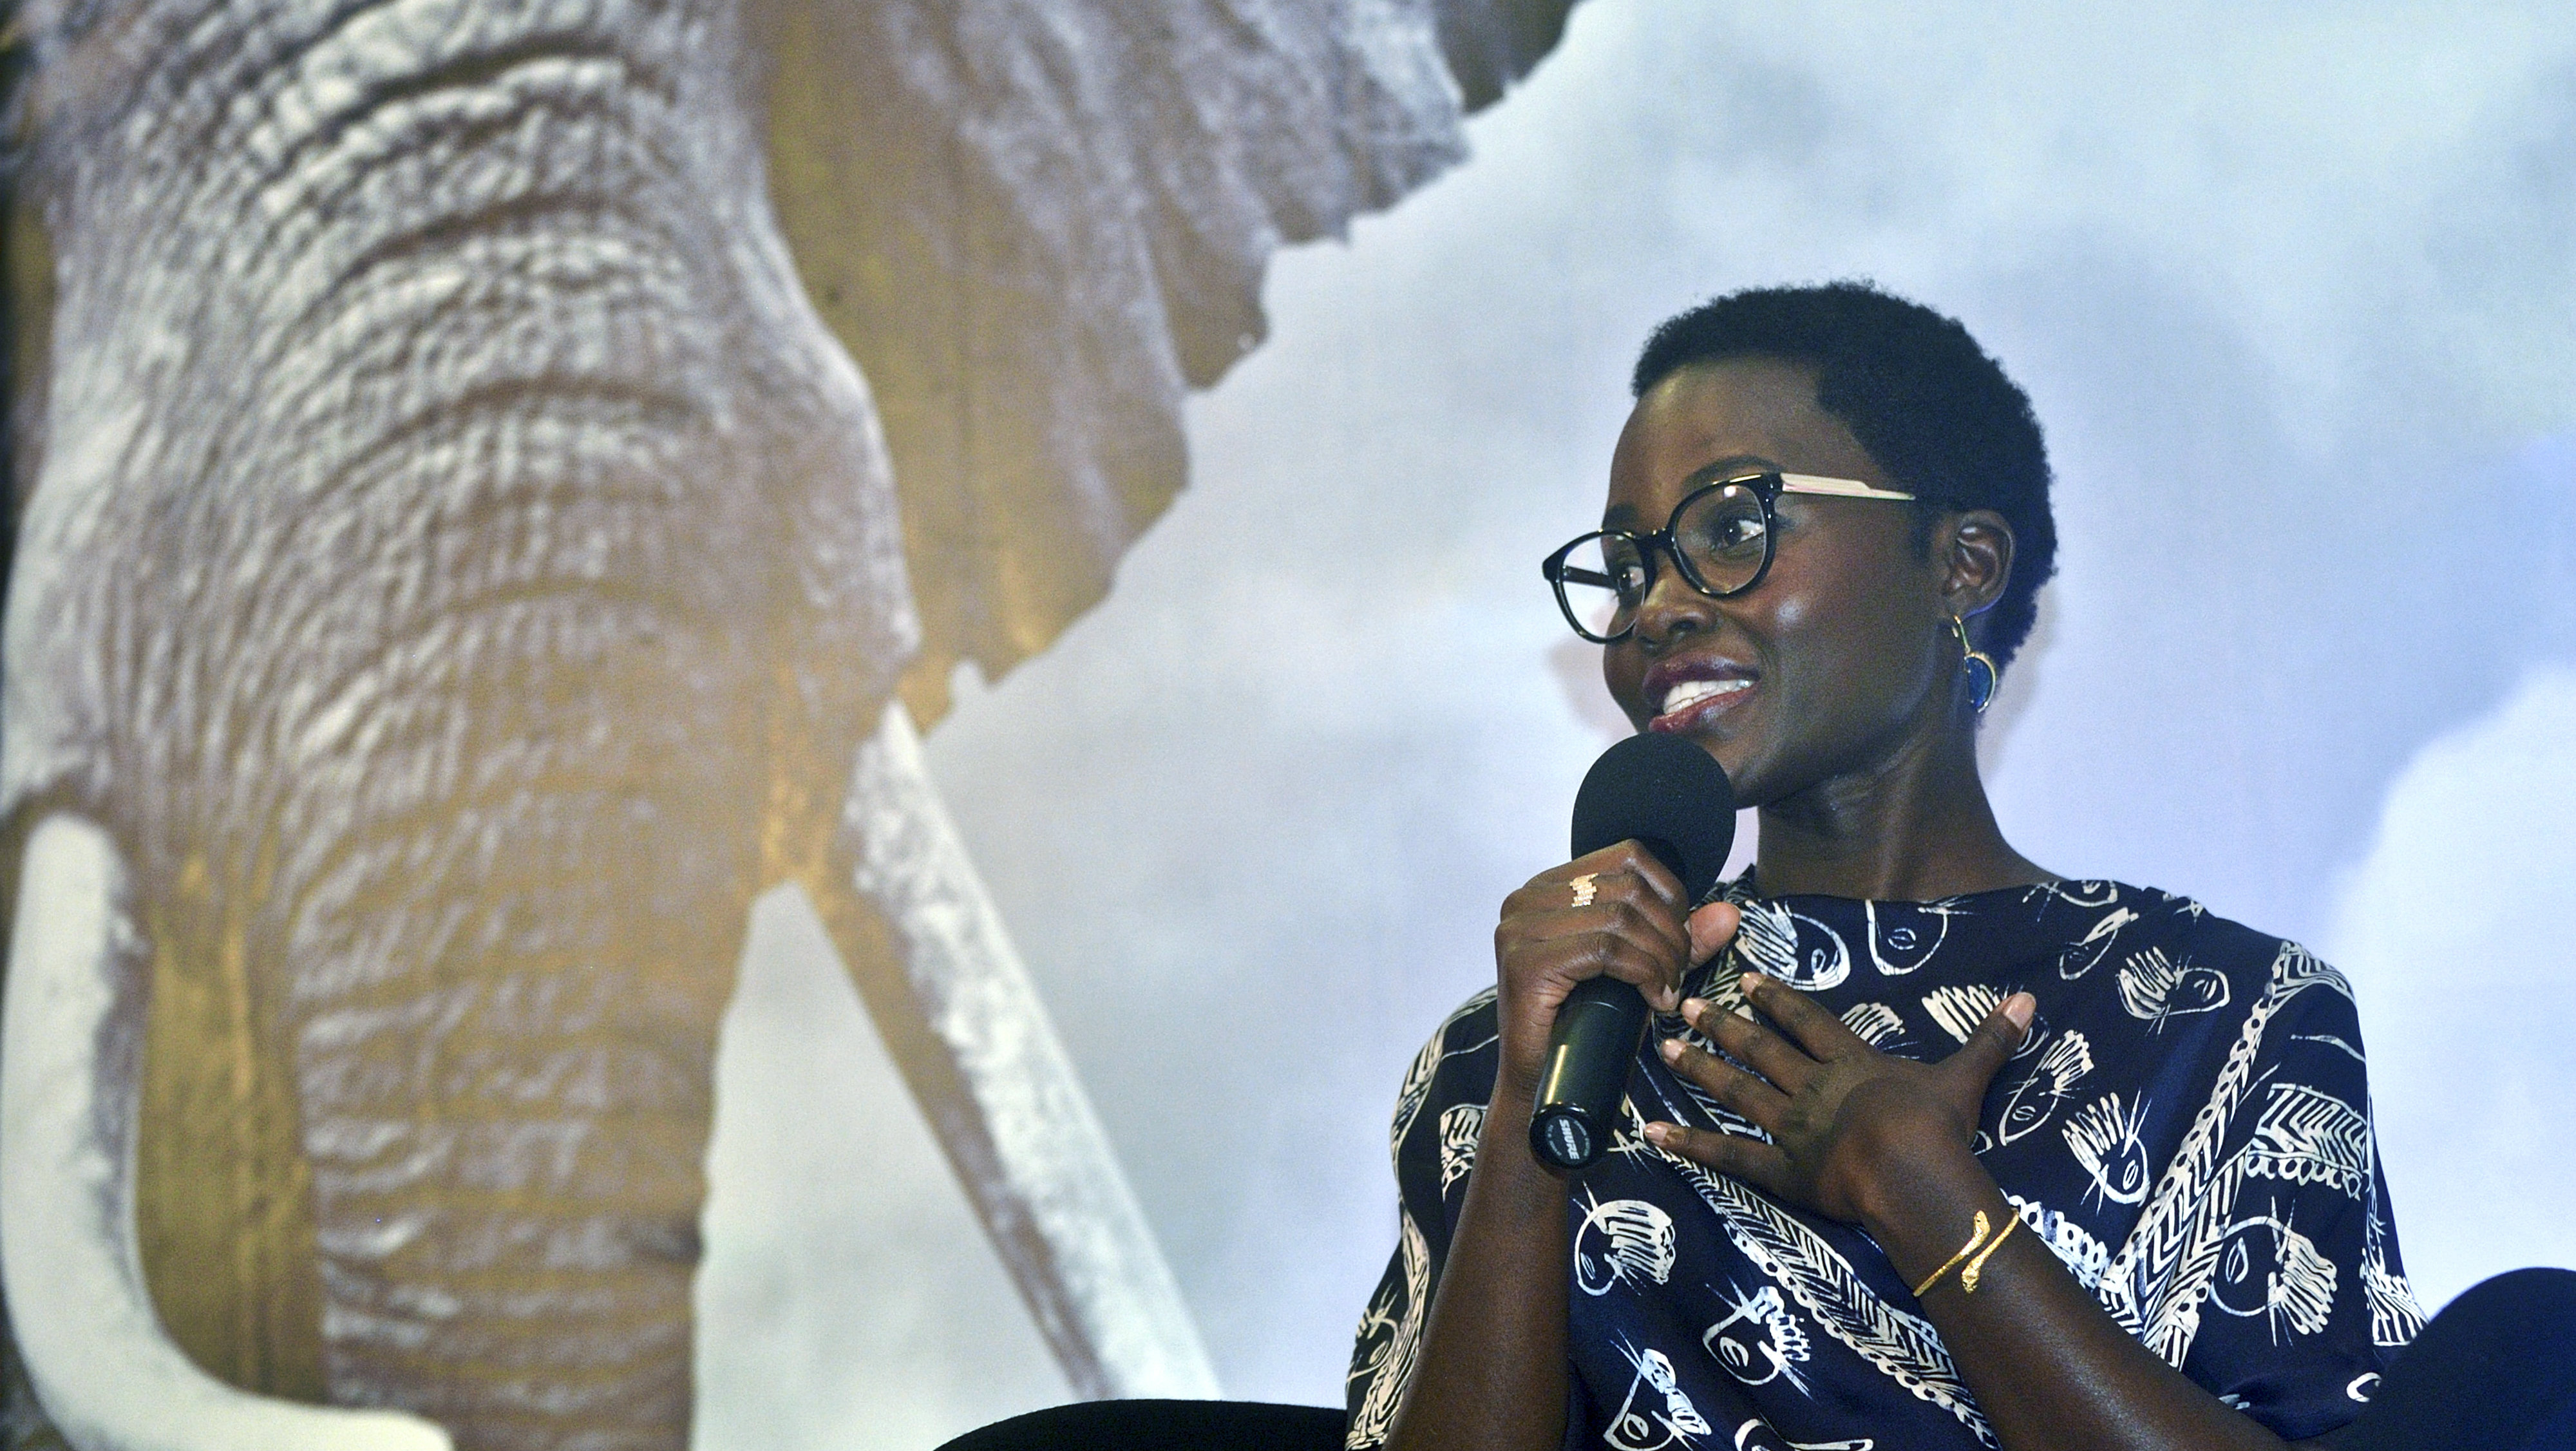 In this photo taken Tuesday, June 30, 2015, Kenyan actress and director Lupita Nyong'o, who was born in Mexico, speaks at a press conference where she announced that she will work as an ambassador for the international conservation organization WildAid, in Nairobi, Kenya. According to WildAid, Lupita Nyong'o will campaign to reduce the global consumption of wildlife products, and particularly against poaching and the trade in elephant ivory. (AP Photo)